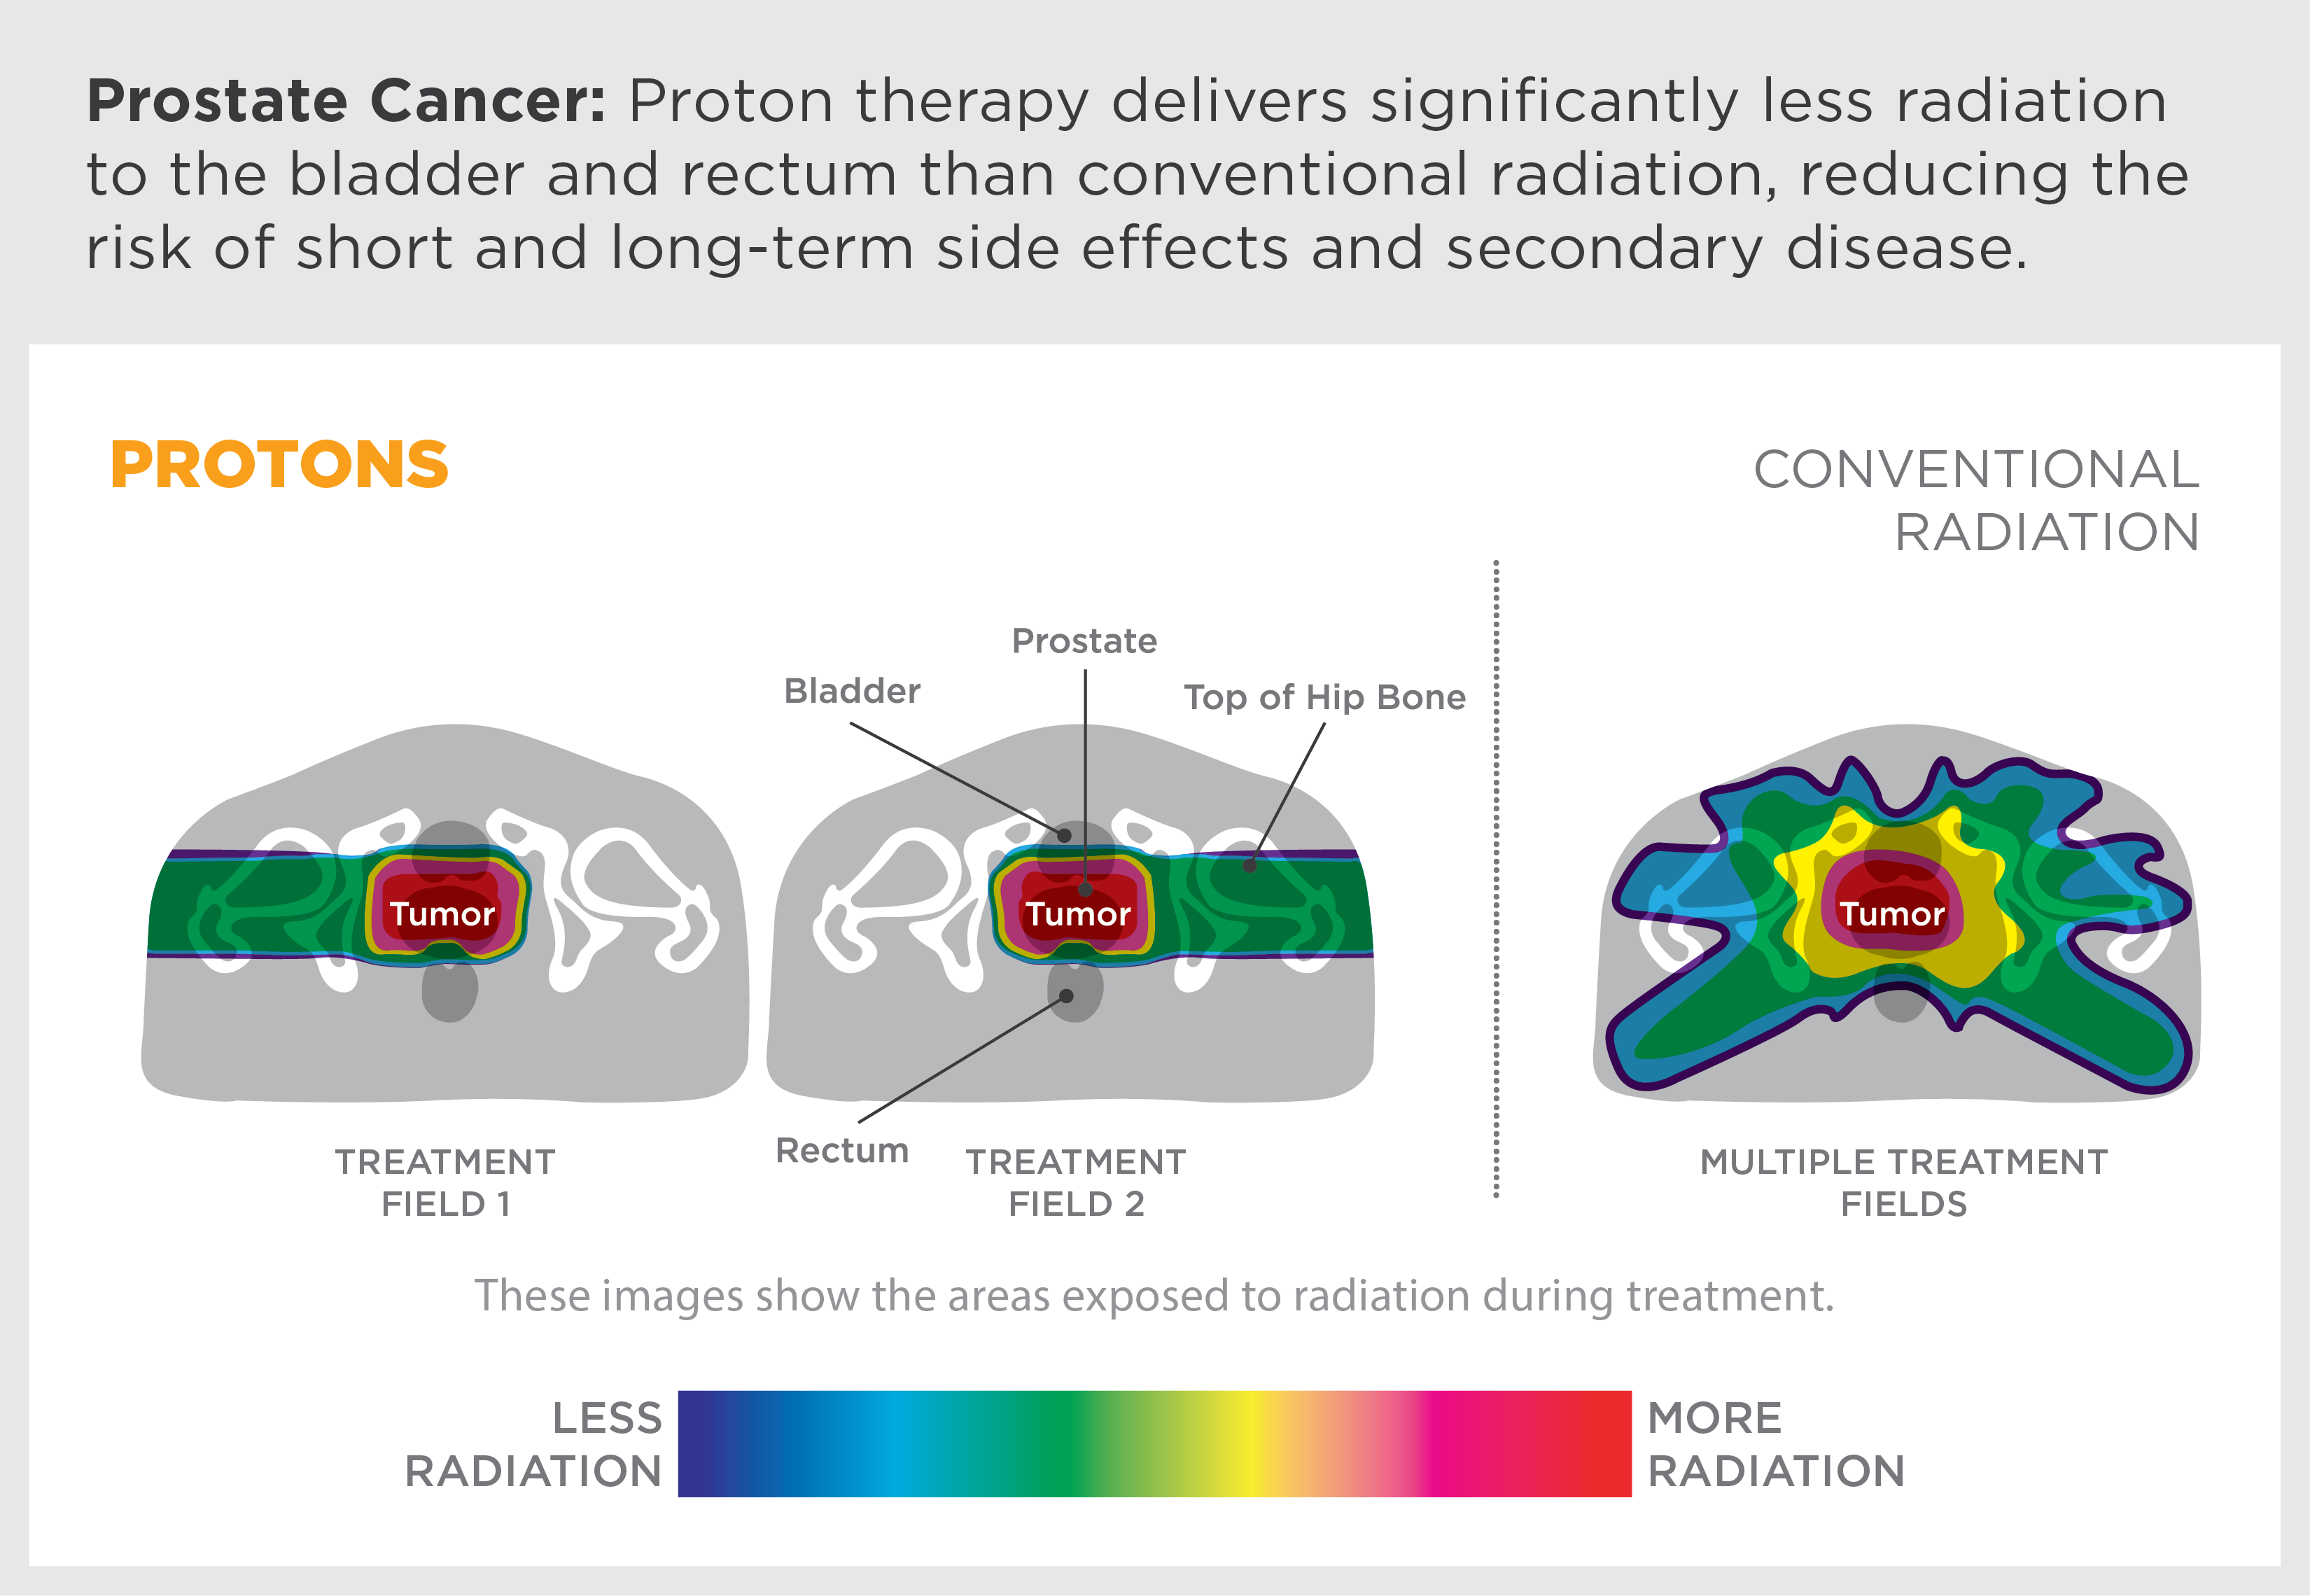 Proton Beam Therapy: How Protons are Revolutionizing Cancer Treatment